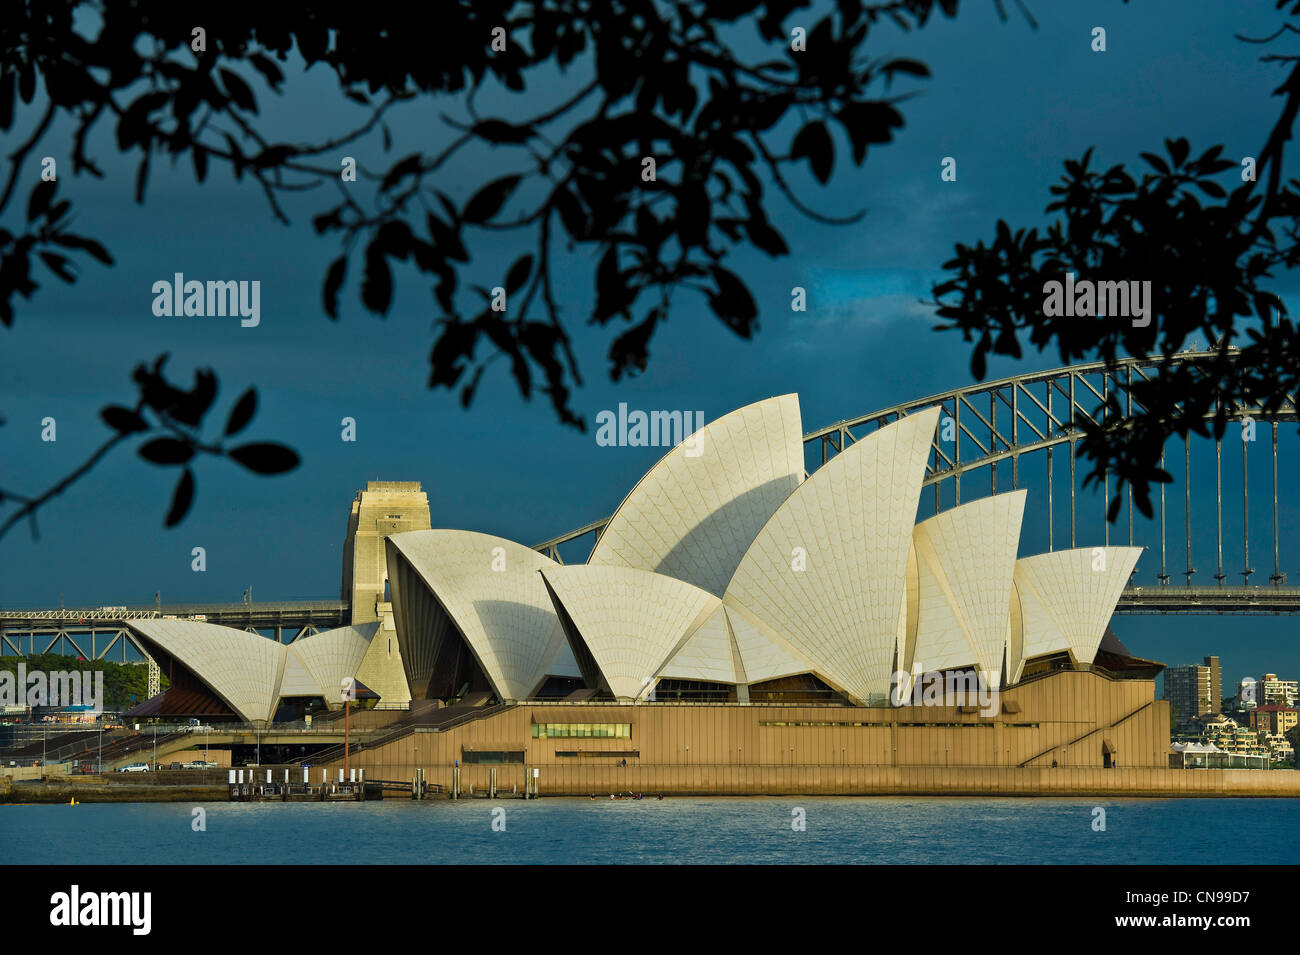 Australia, New South Wales, Sydney, The Sydney Opera House by the architec Jørn Utzon listed World Heritage - Stock Image